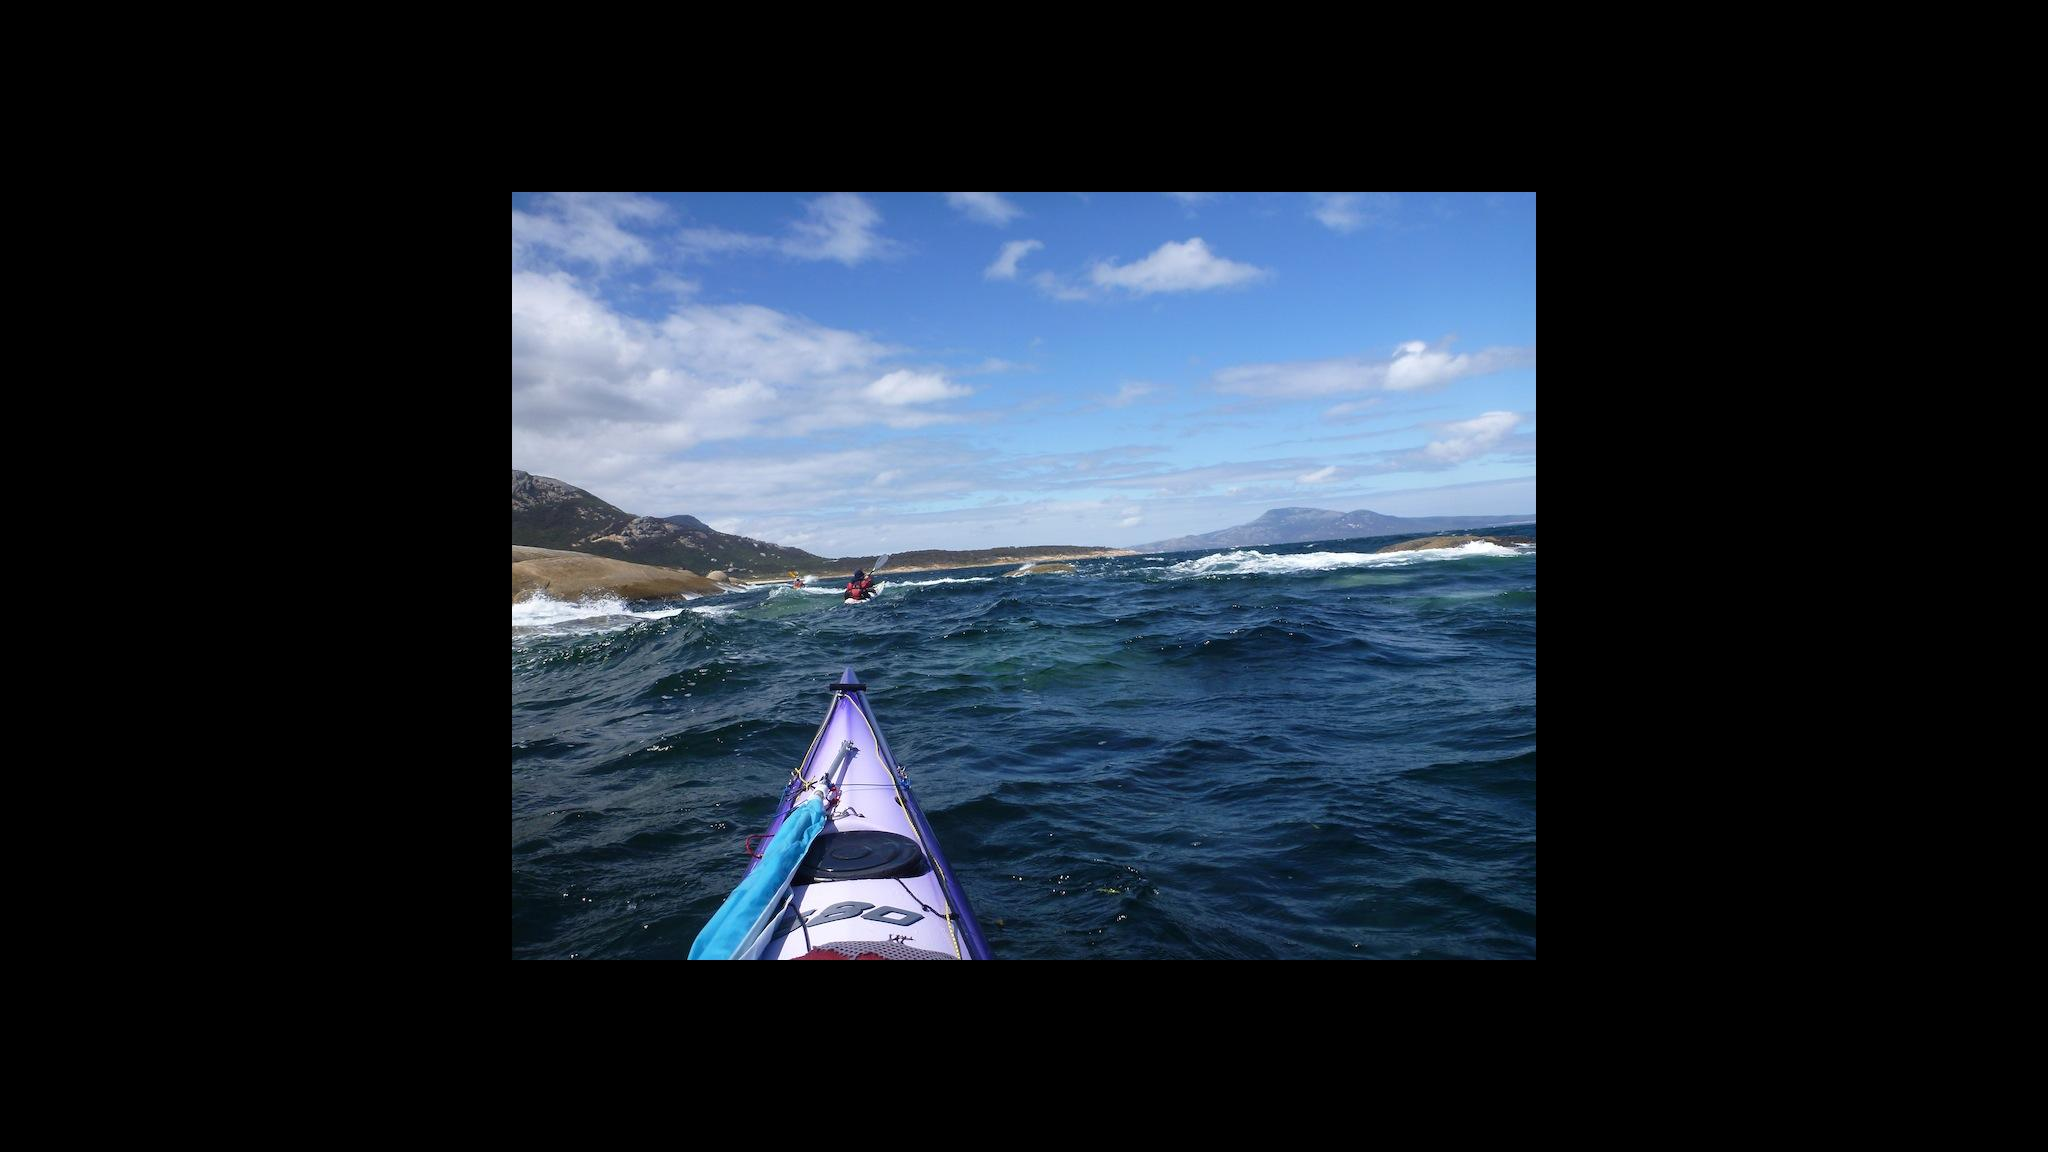 Roaring 40s Kayaking - Learn intermediate kayaking skills Hobart Tasmania